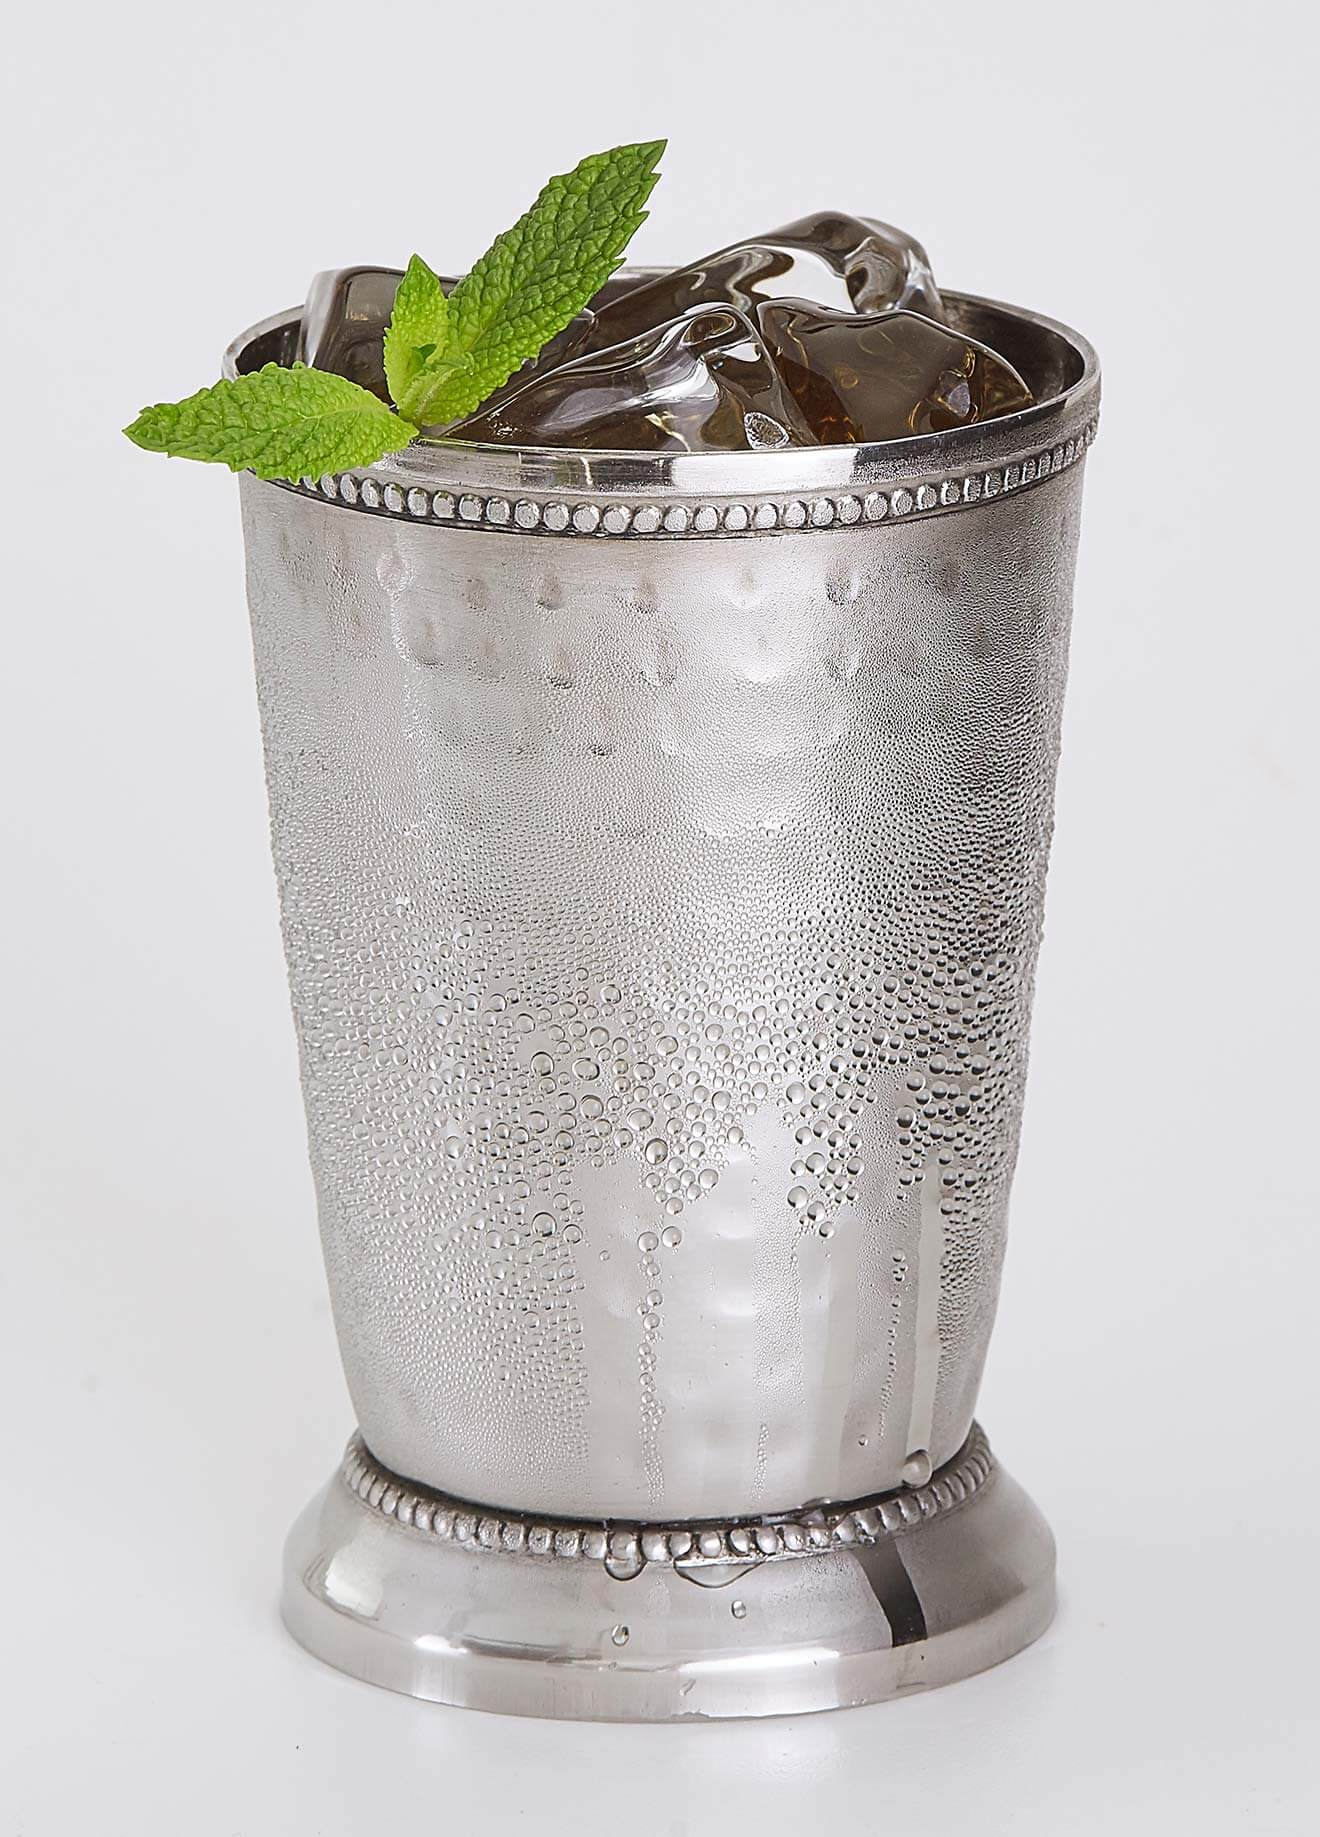 Ginger Julep cocktail made with Rebel Yell Bourbon